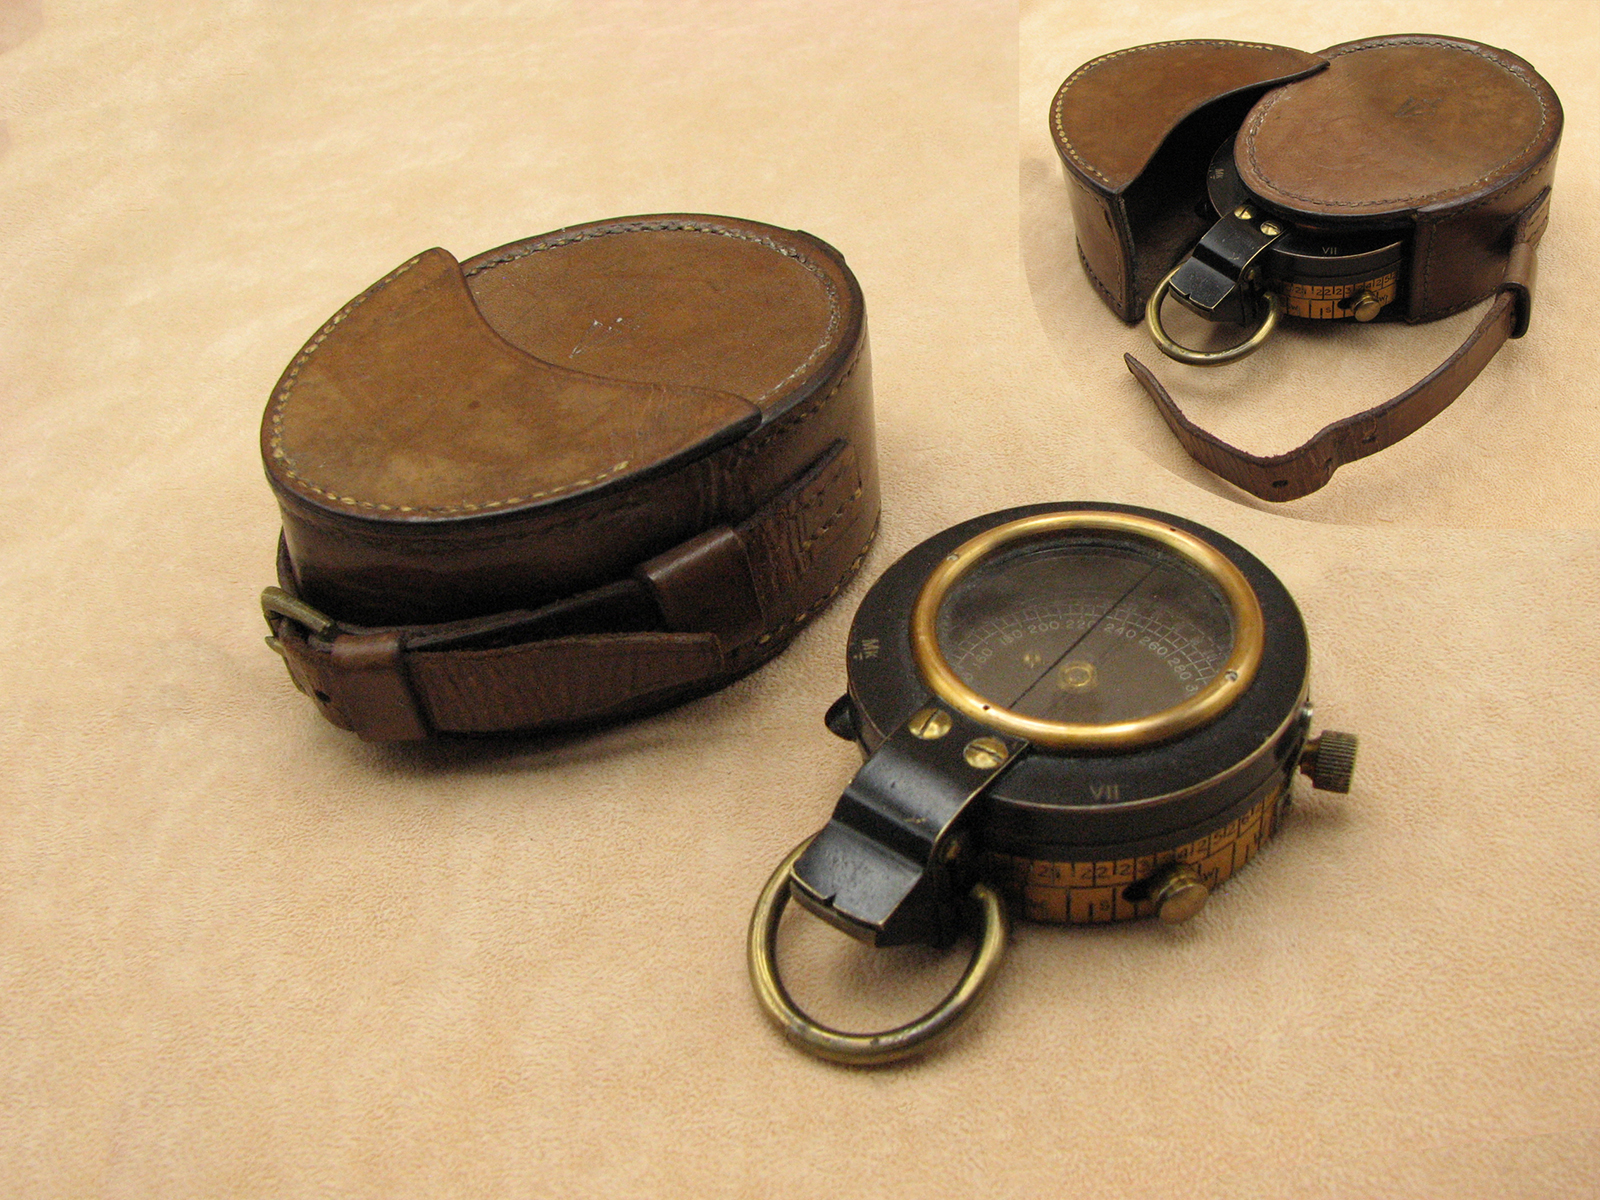 Rare WW1 Francis Barker Mk VII compass made for the Indian Army7